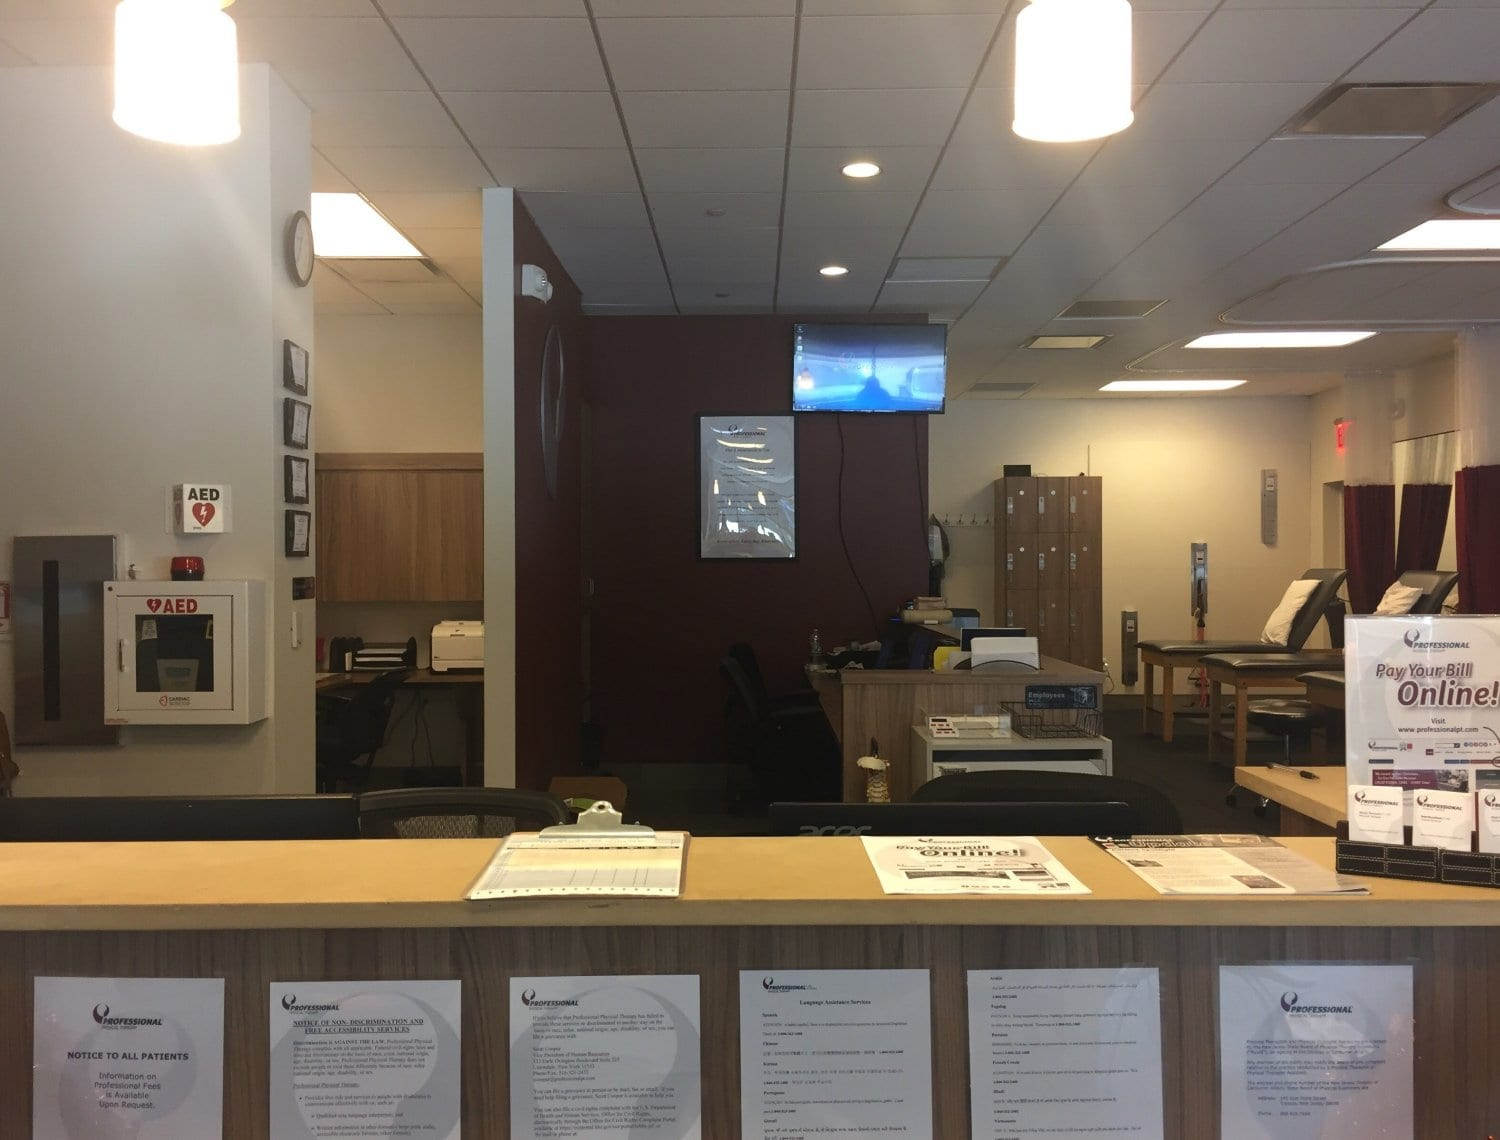 This is an image of the front desk at our physical therapy clinic in Paramus, New Jersey.